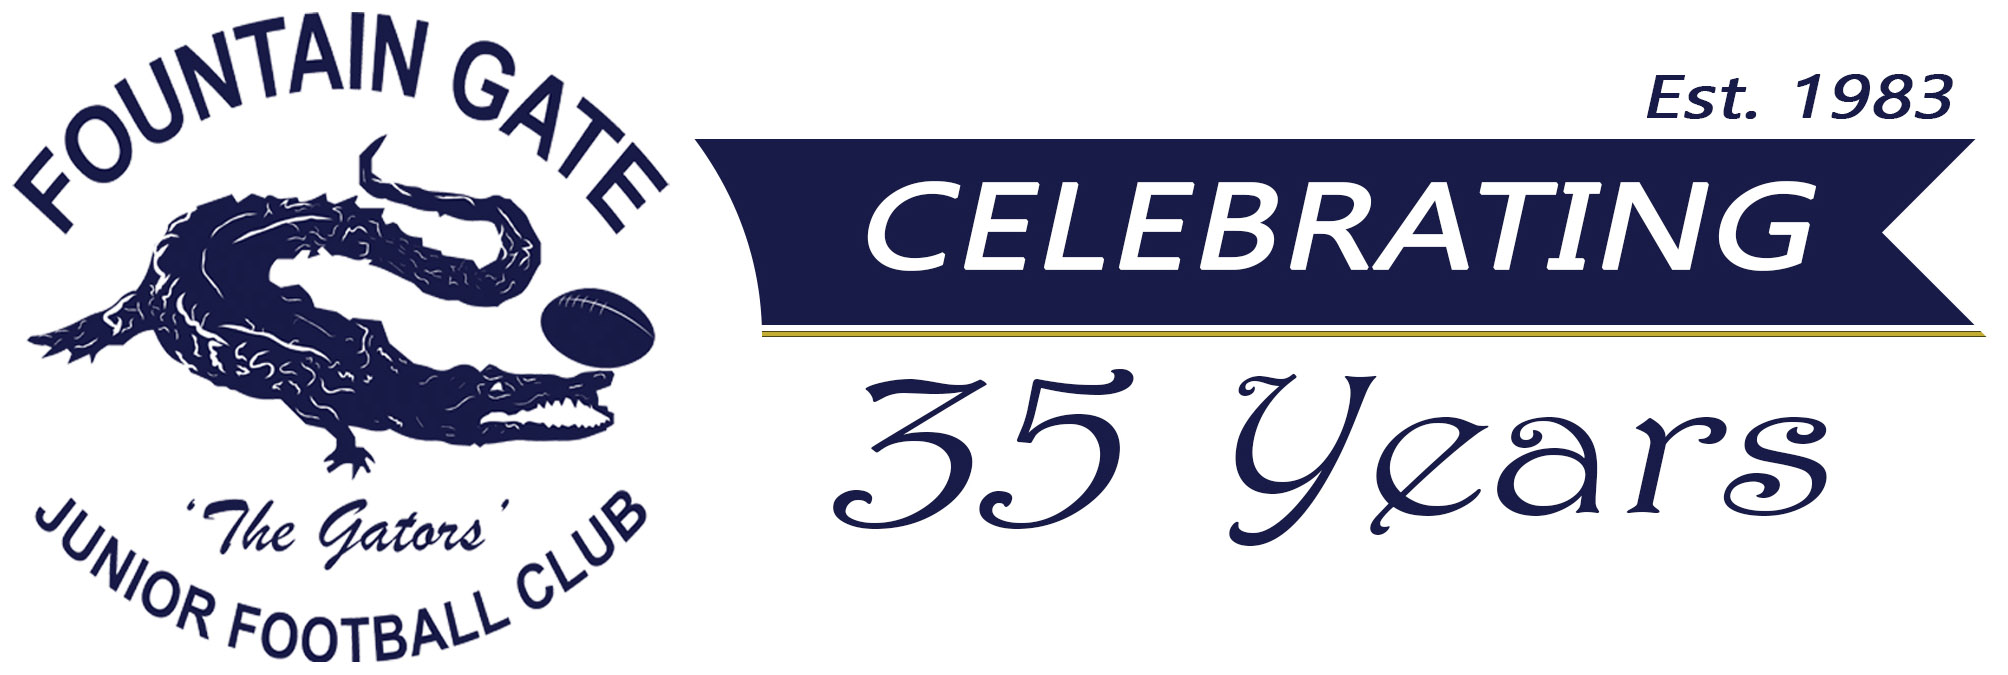 Celebrating 35 Years in 2018